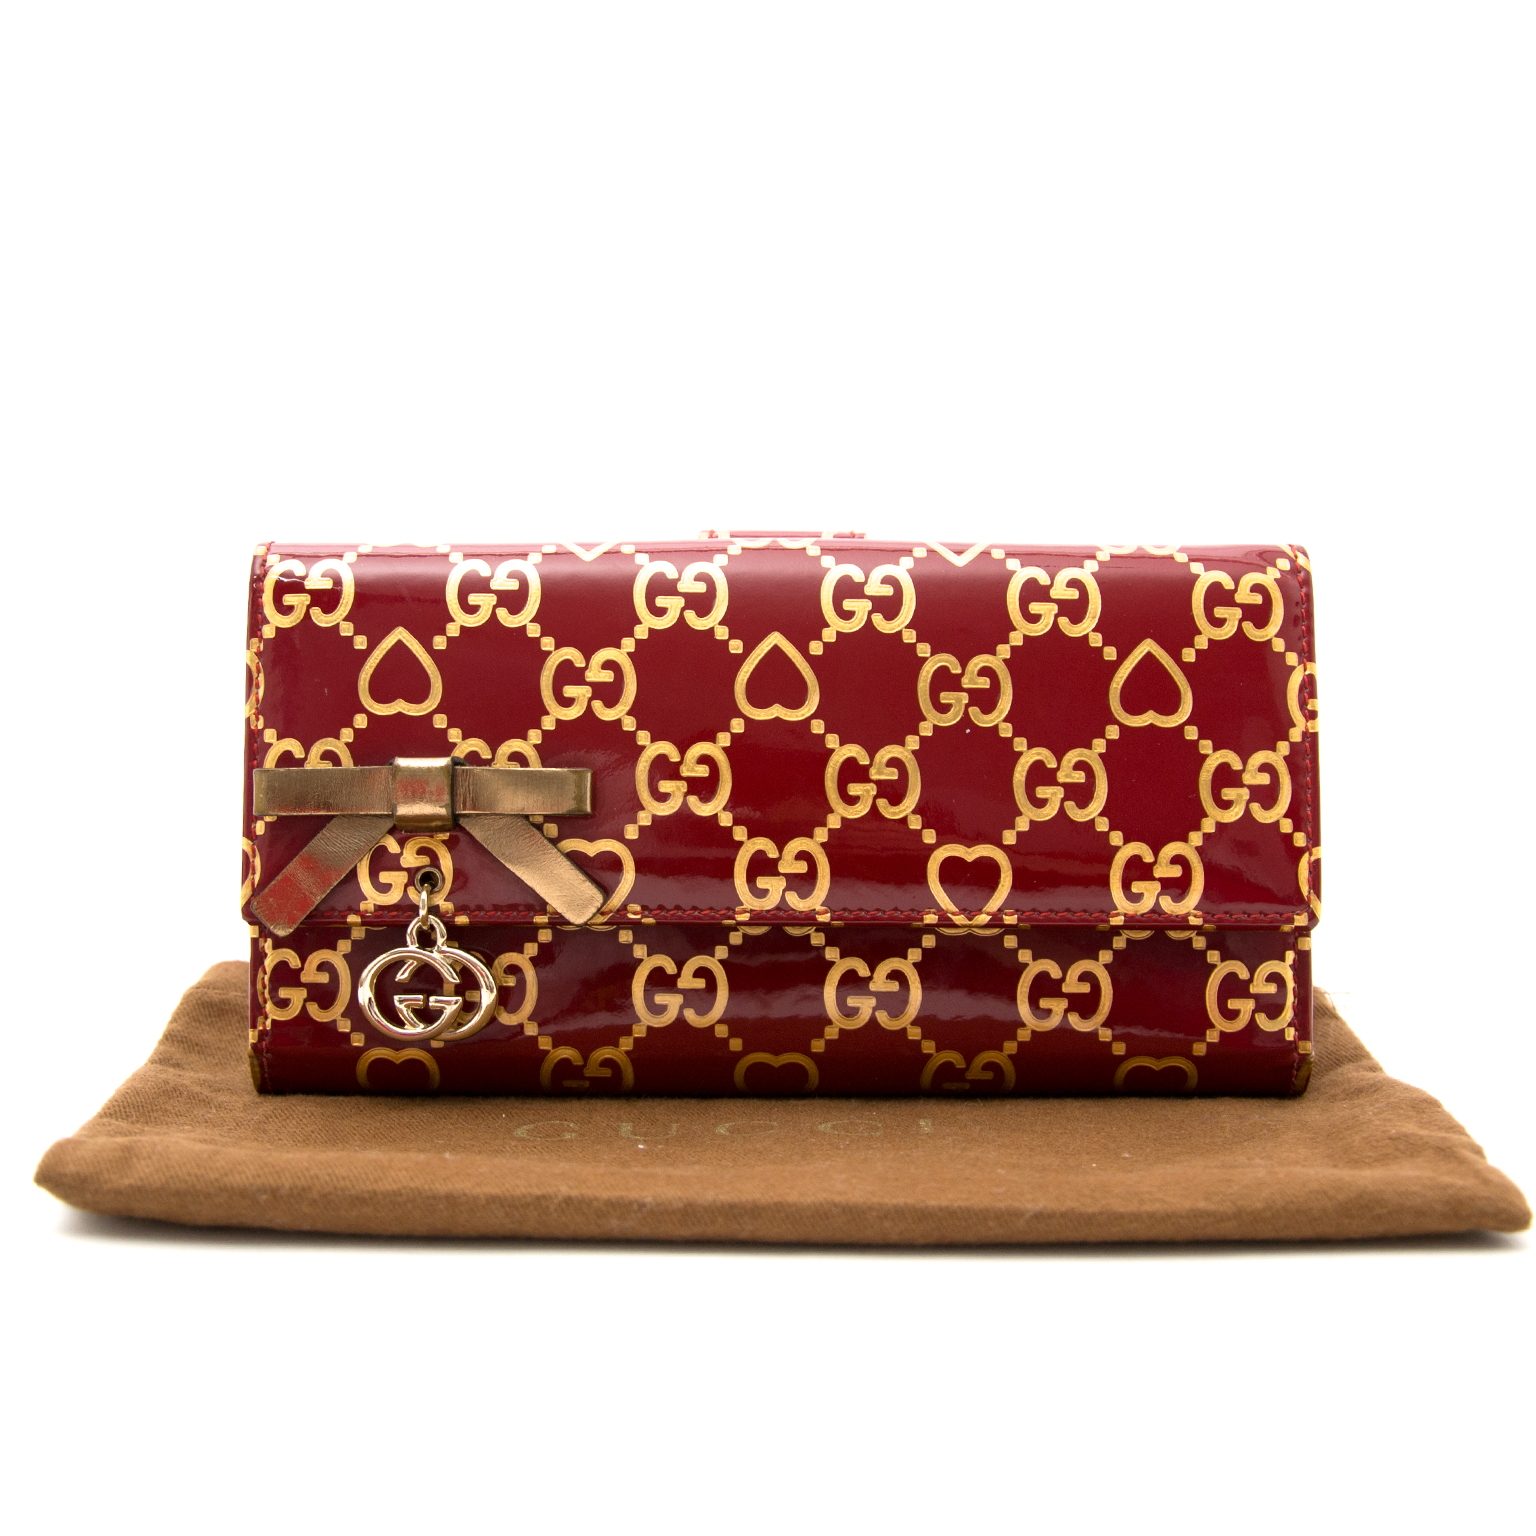 Buy a secondhand Gucci Red Monogram Heart Wallet online